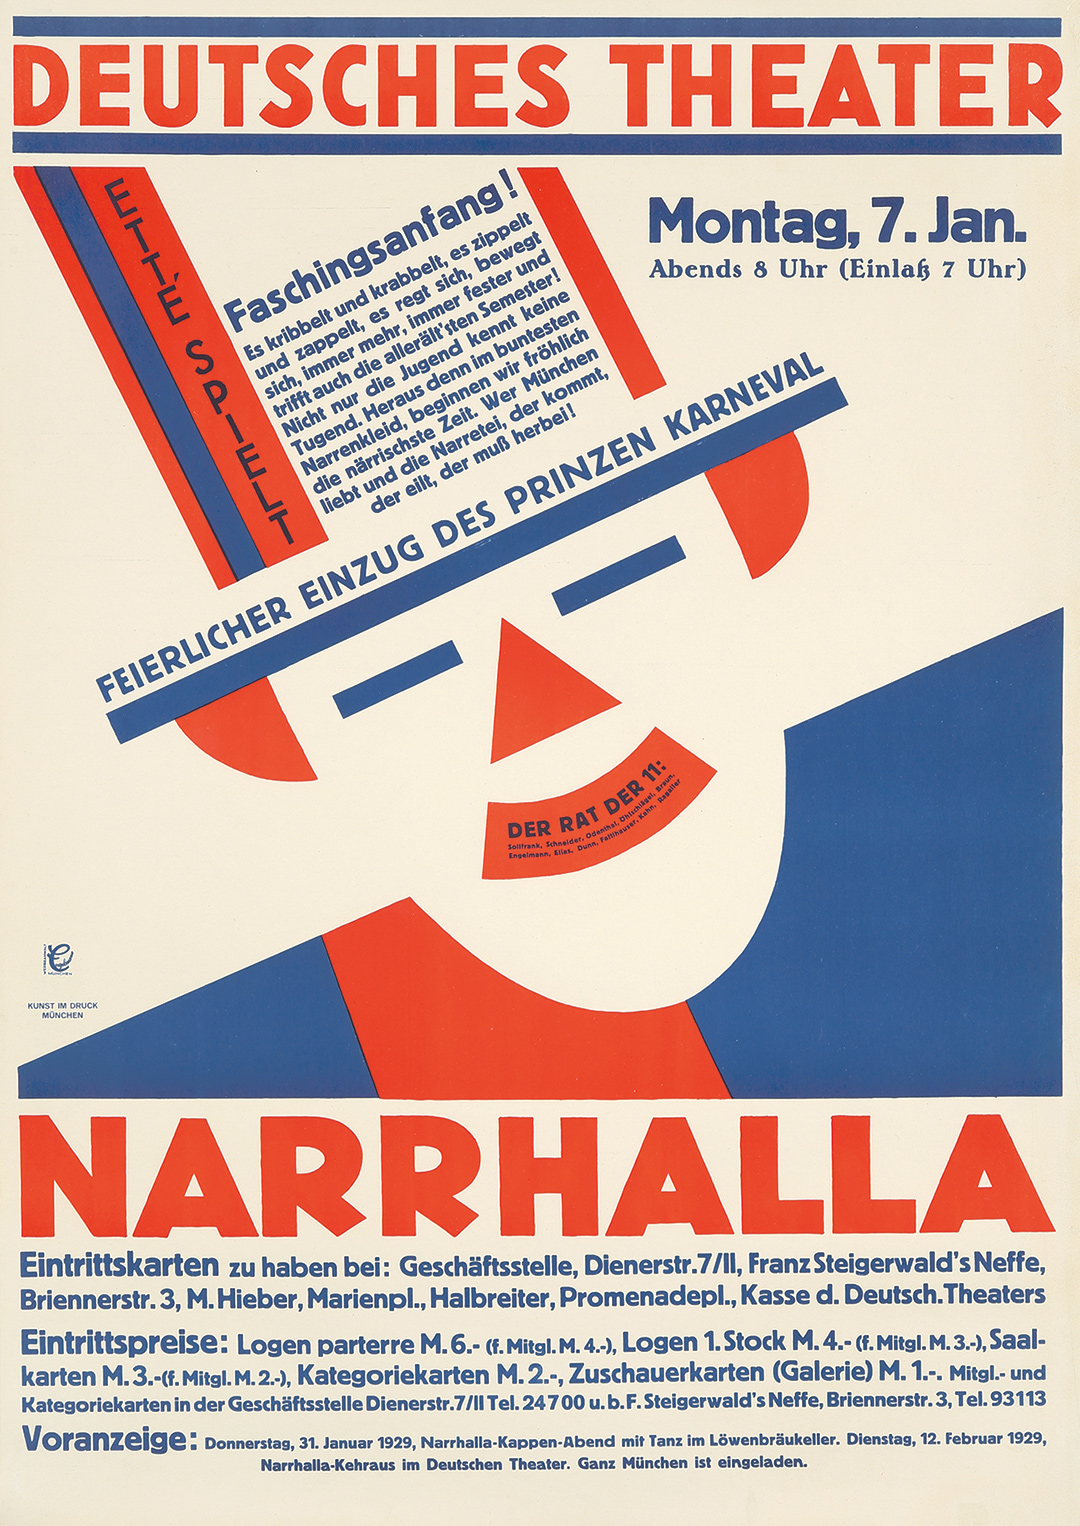 278. Deutsches Theater / Narrhalla. 1929.